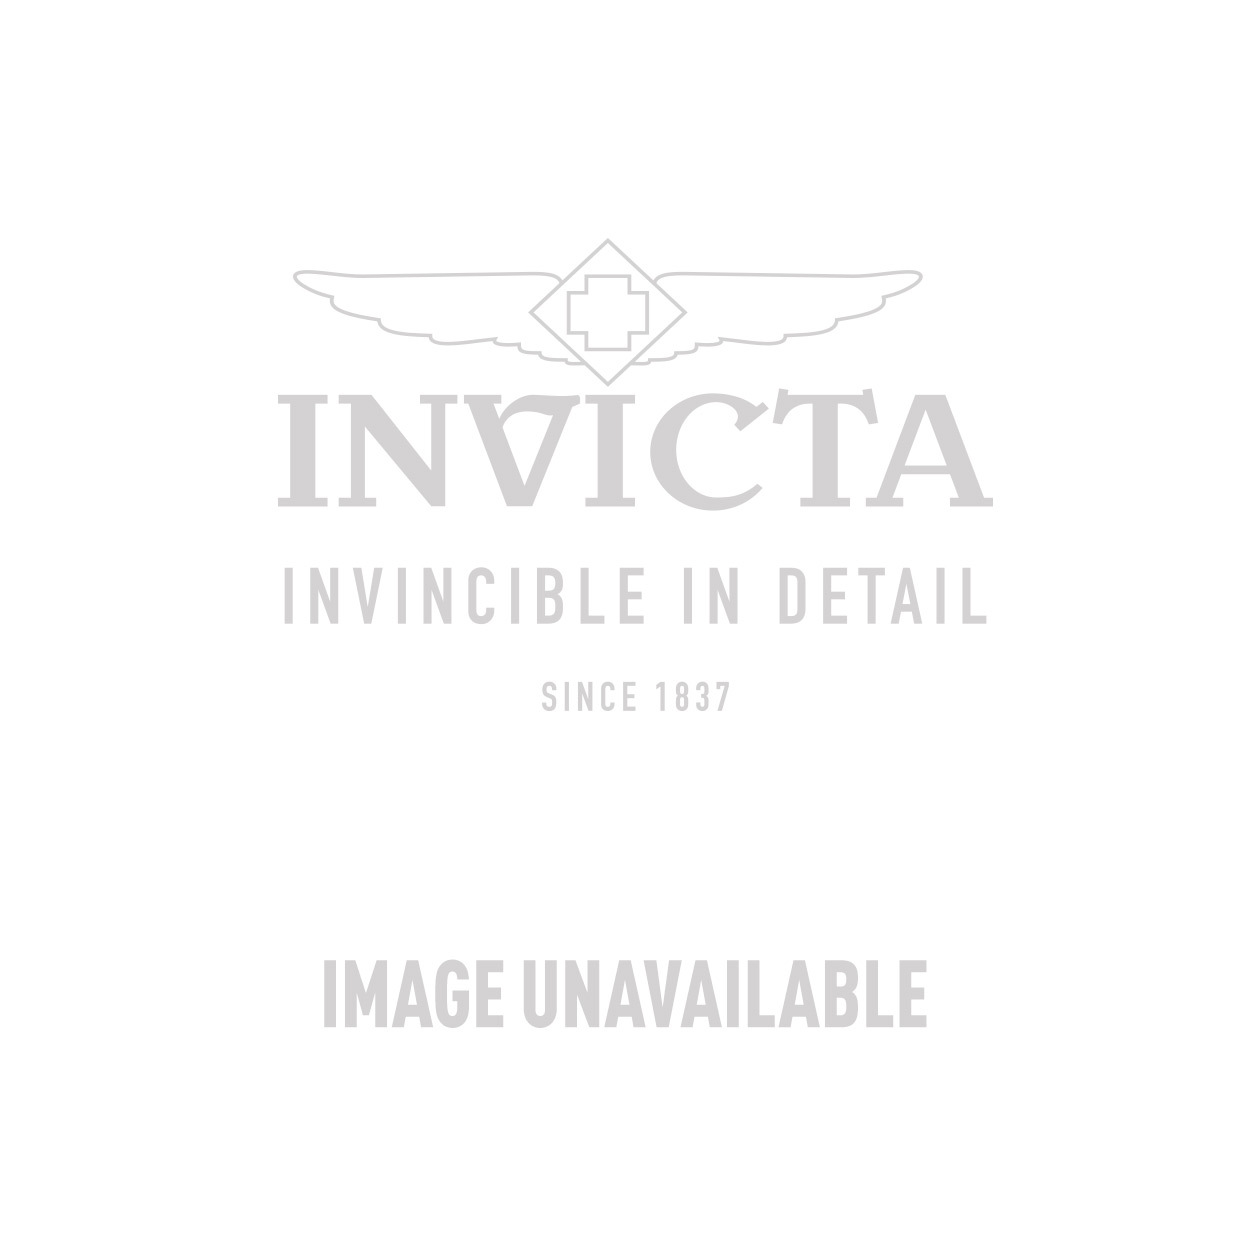 Invicta JT Swiss Made Quartz Watch - Black, Red case with Black, Red tone Leather band - Model 17183